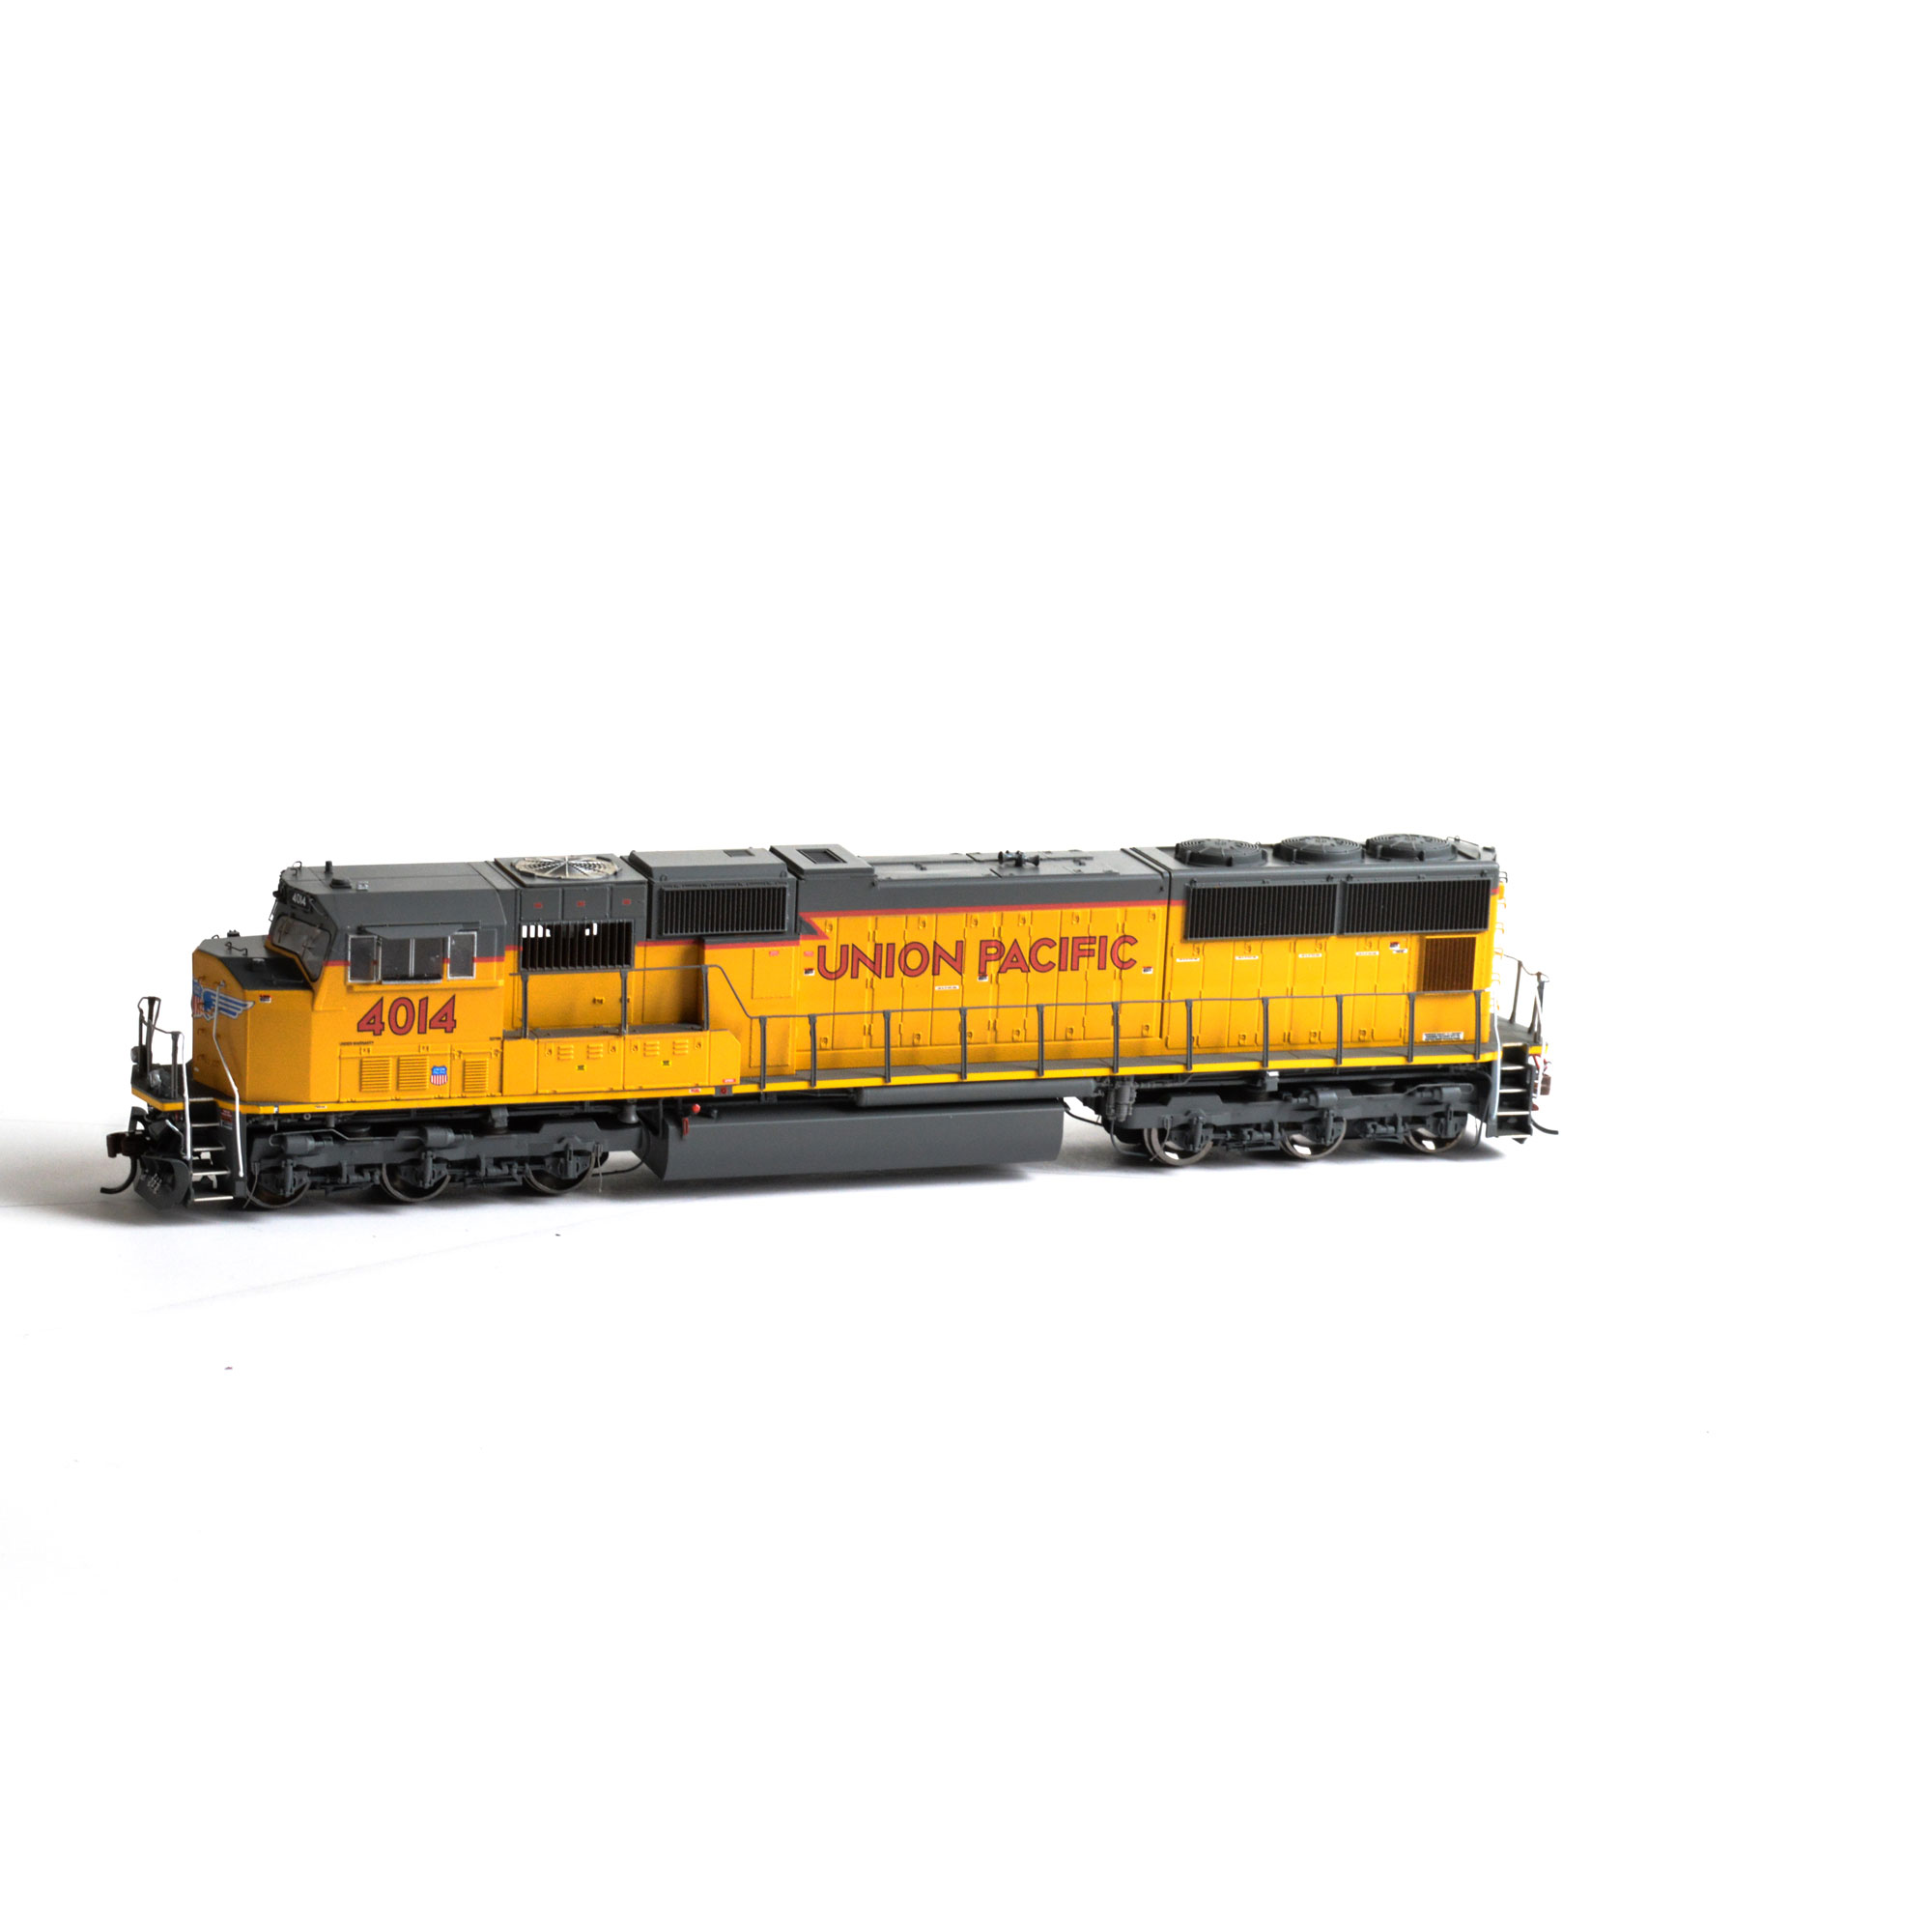 HO SD70M w/DCC & Sound, No Flag UP #4014 (ATHG69339): Athearn Trains